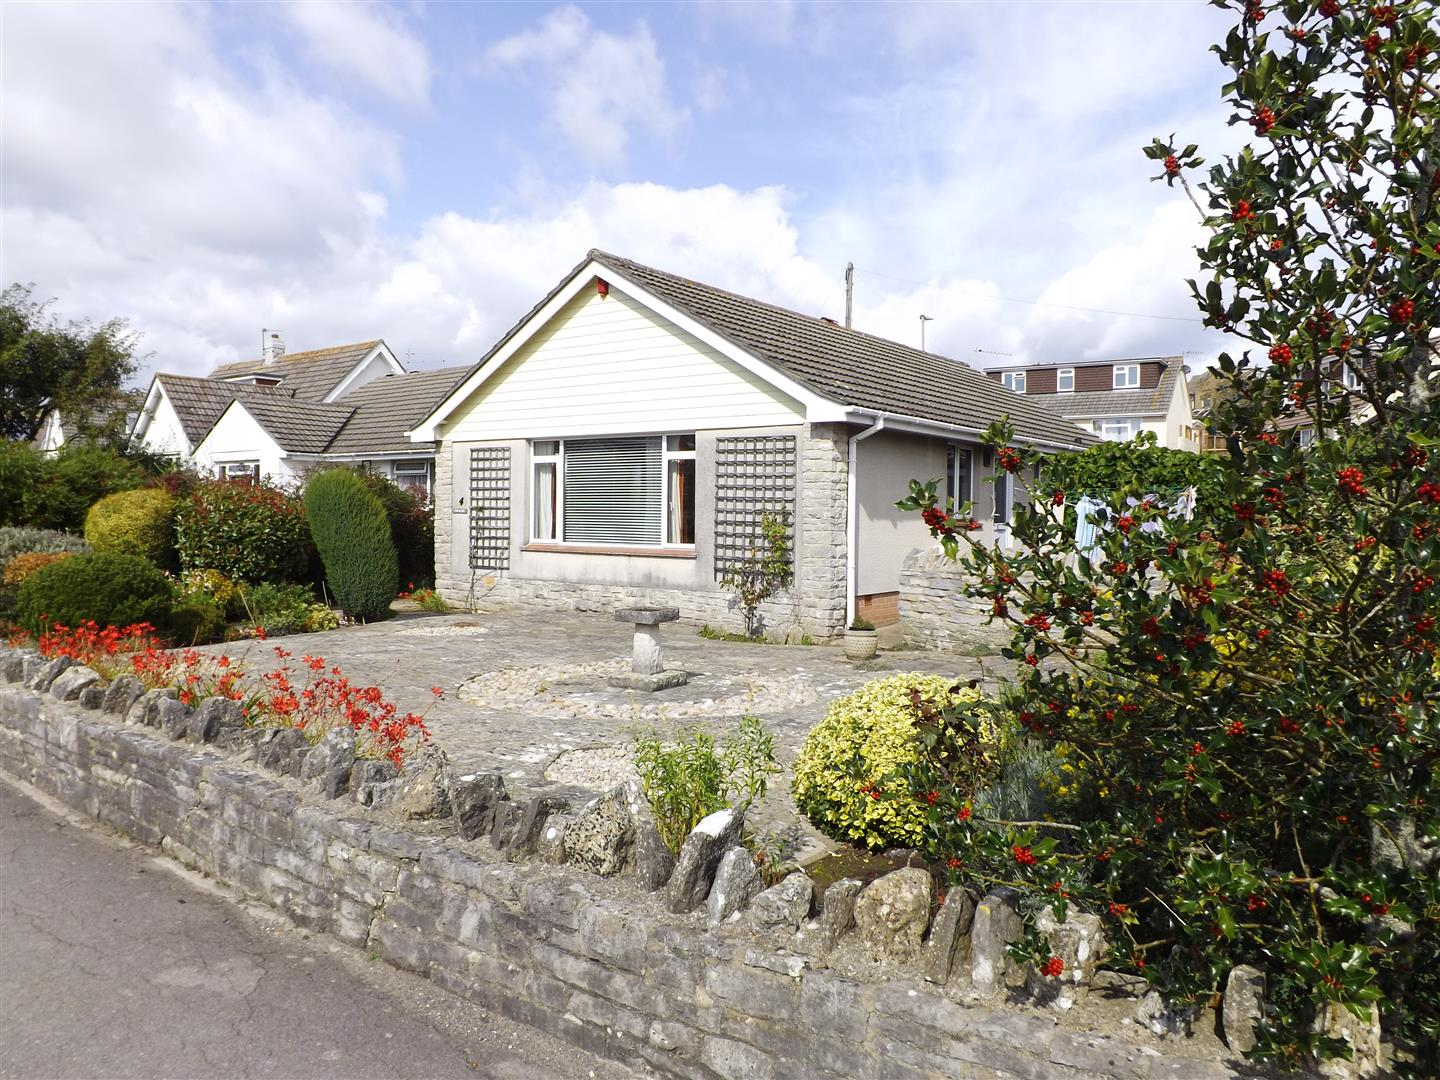 3 Bedrooms Detached Bungalow for sale in Cauldron Barn Road, Swanage